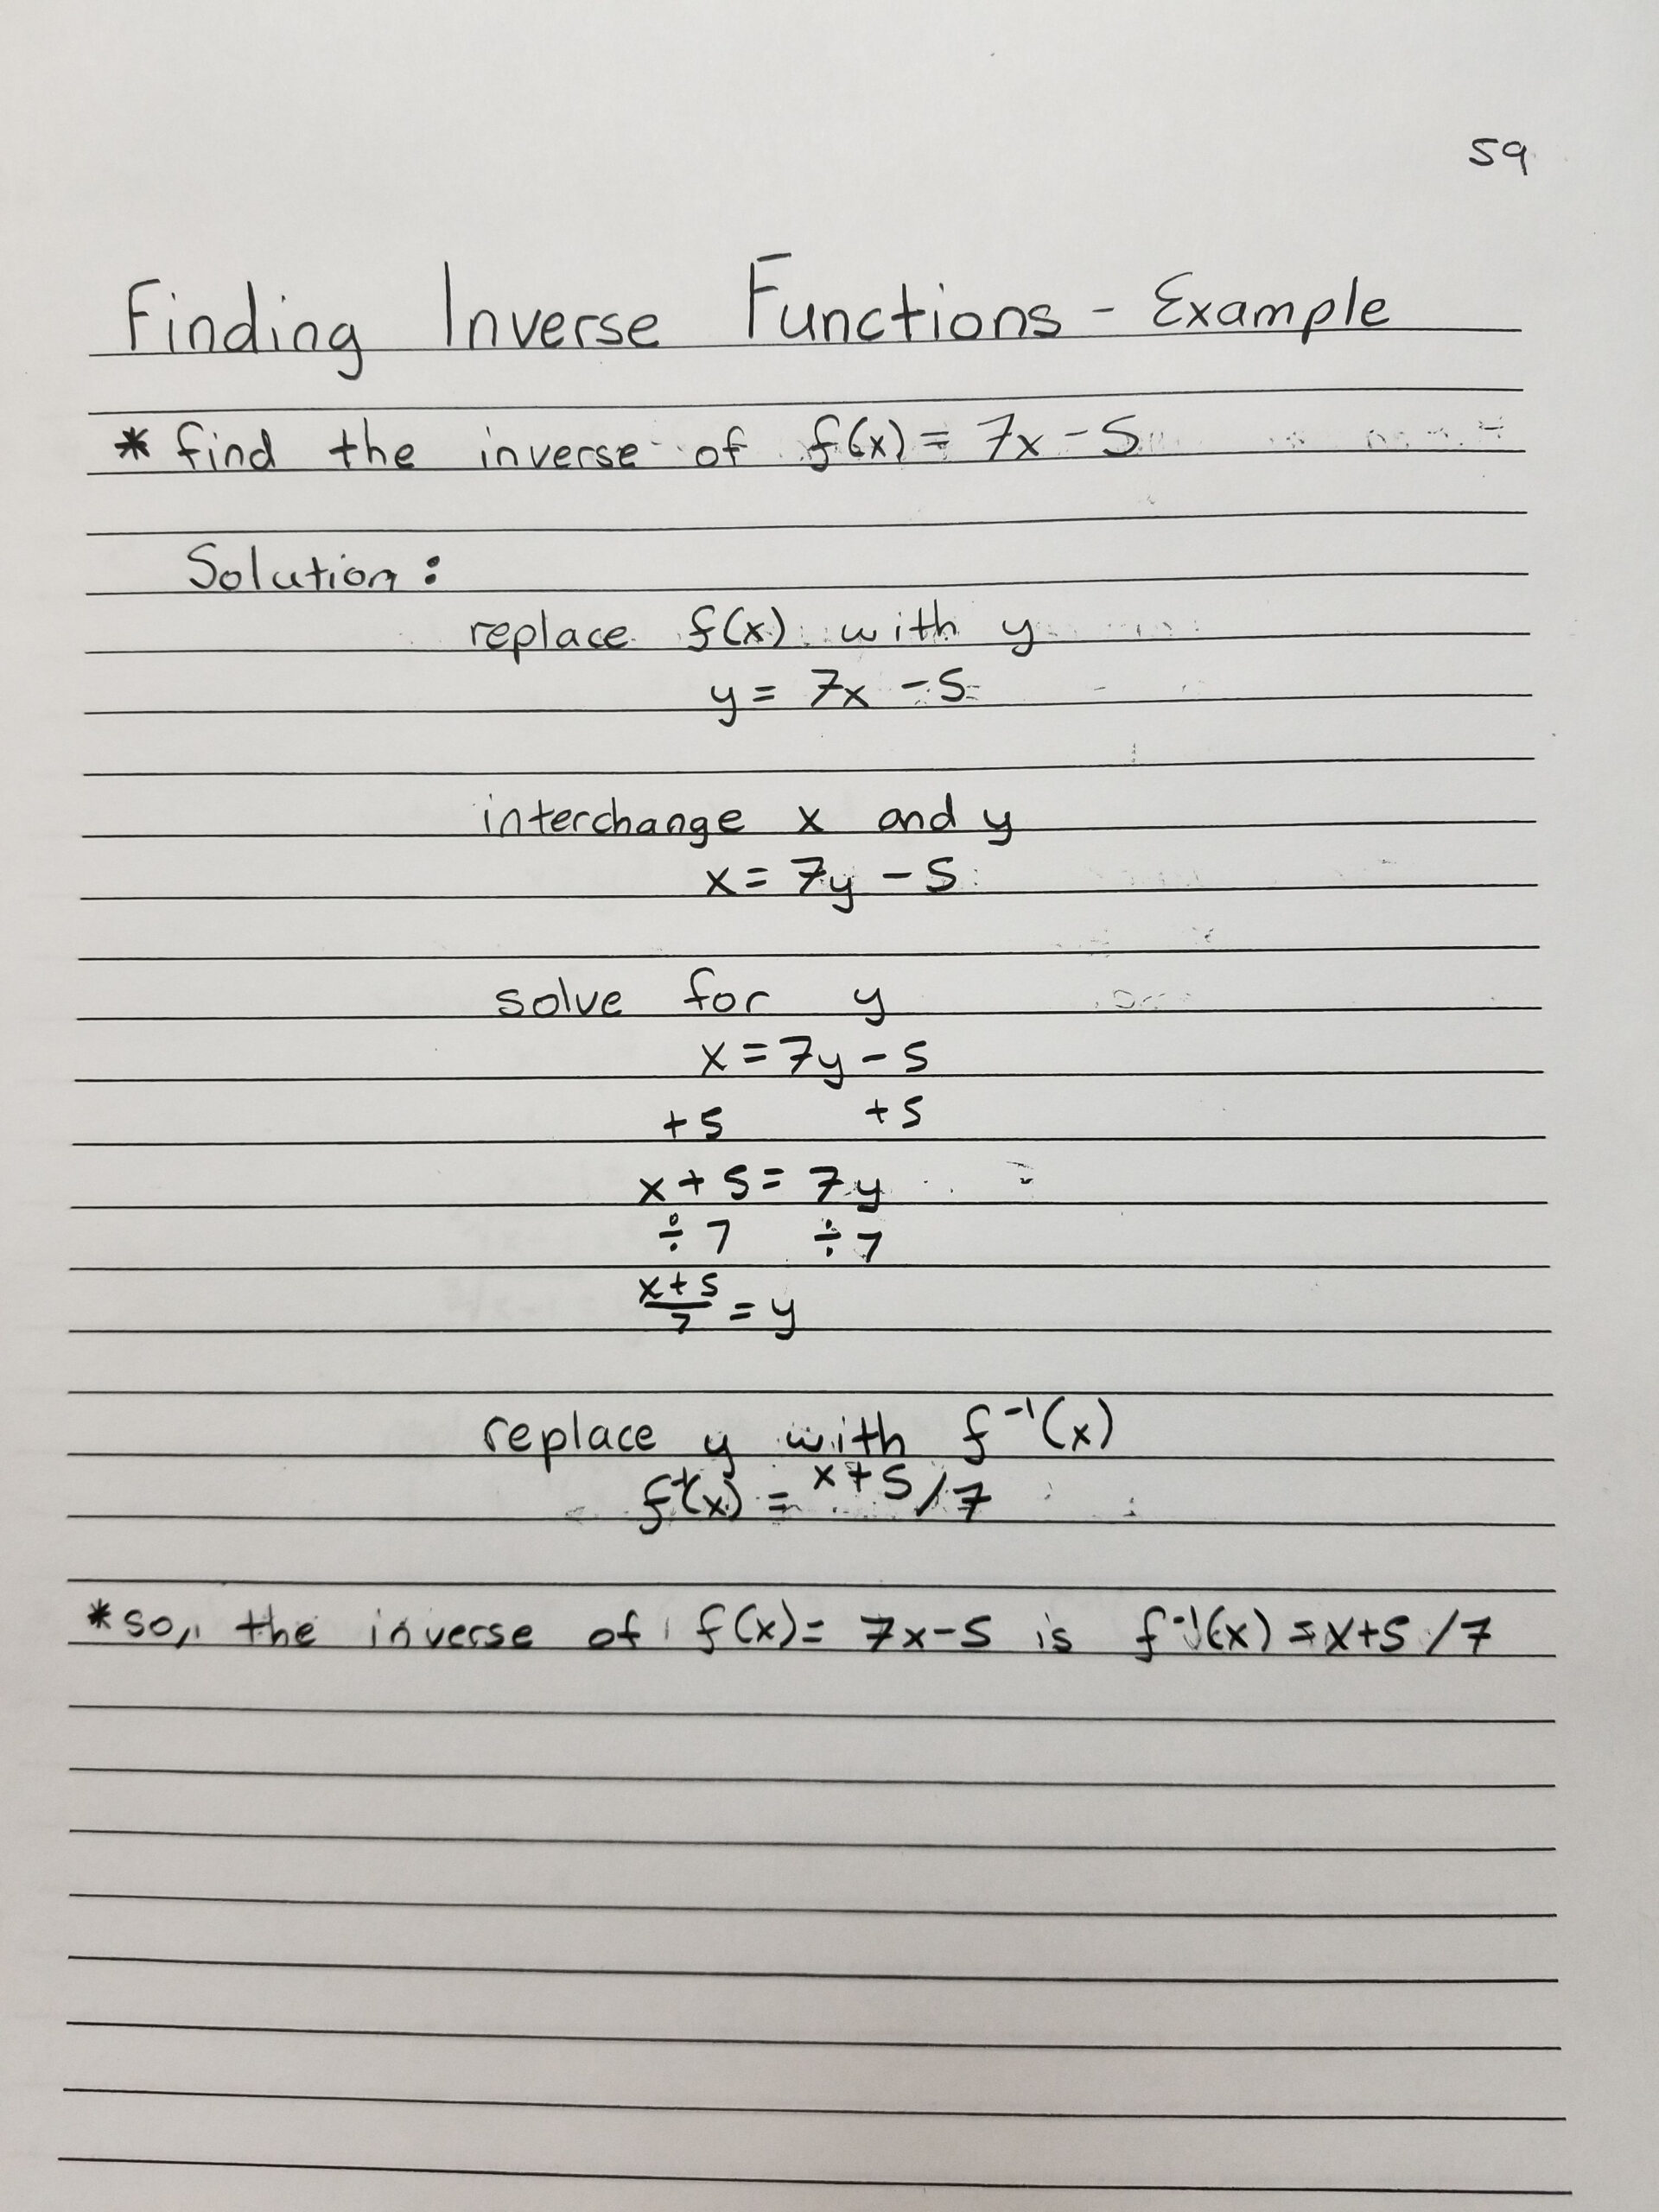 Finding Inverse Functions -- Example 1 | Inverse Functions